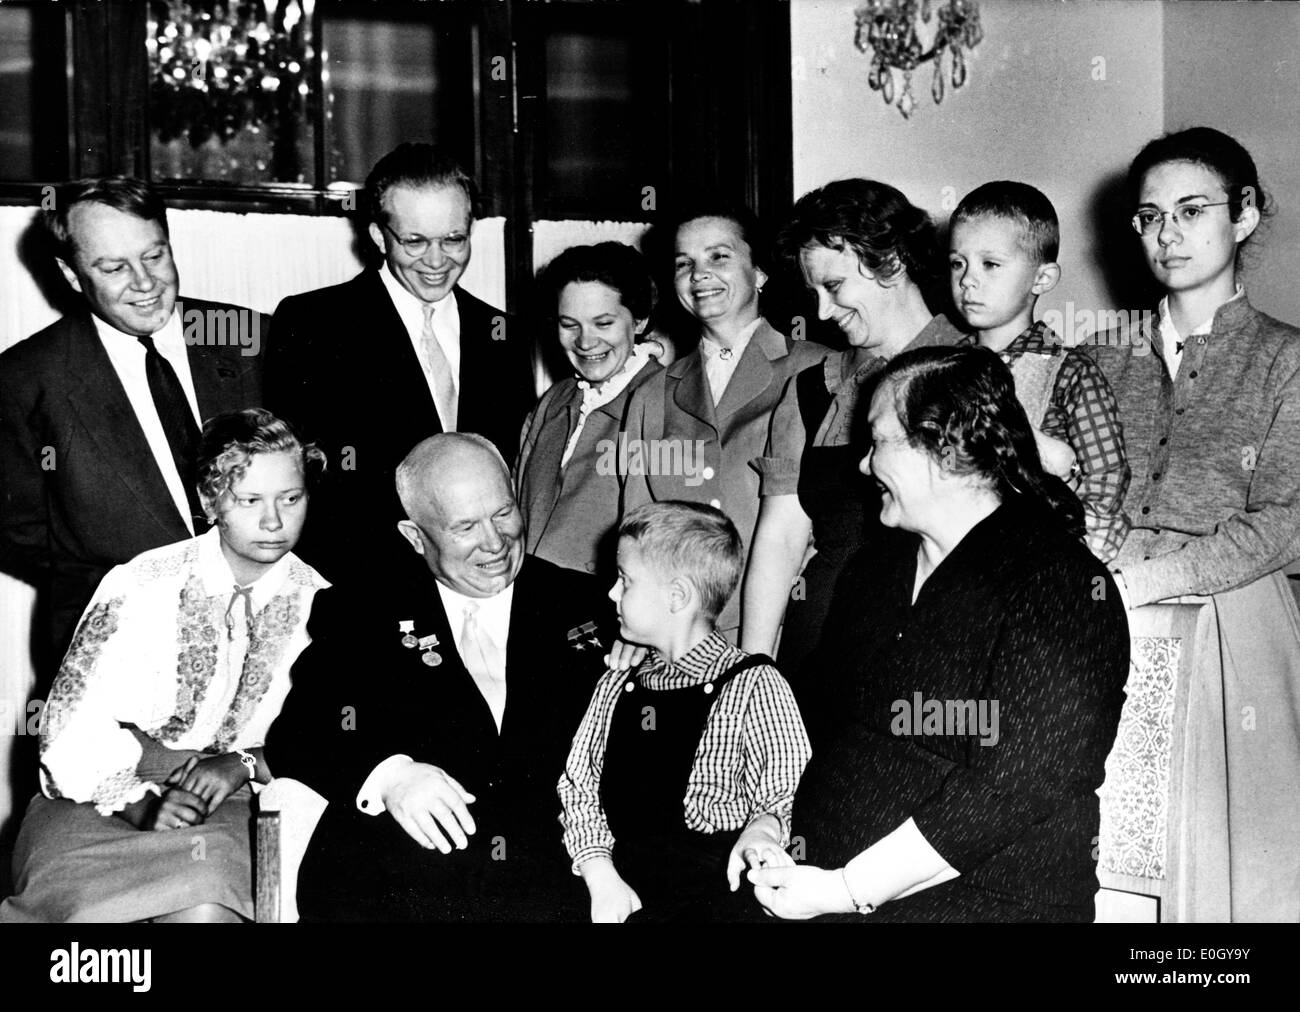 Nikita Kruschev and his family in Paris - Stock Image